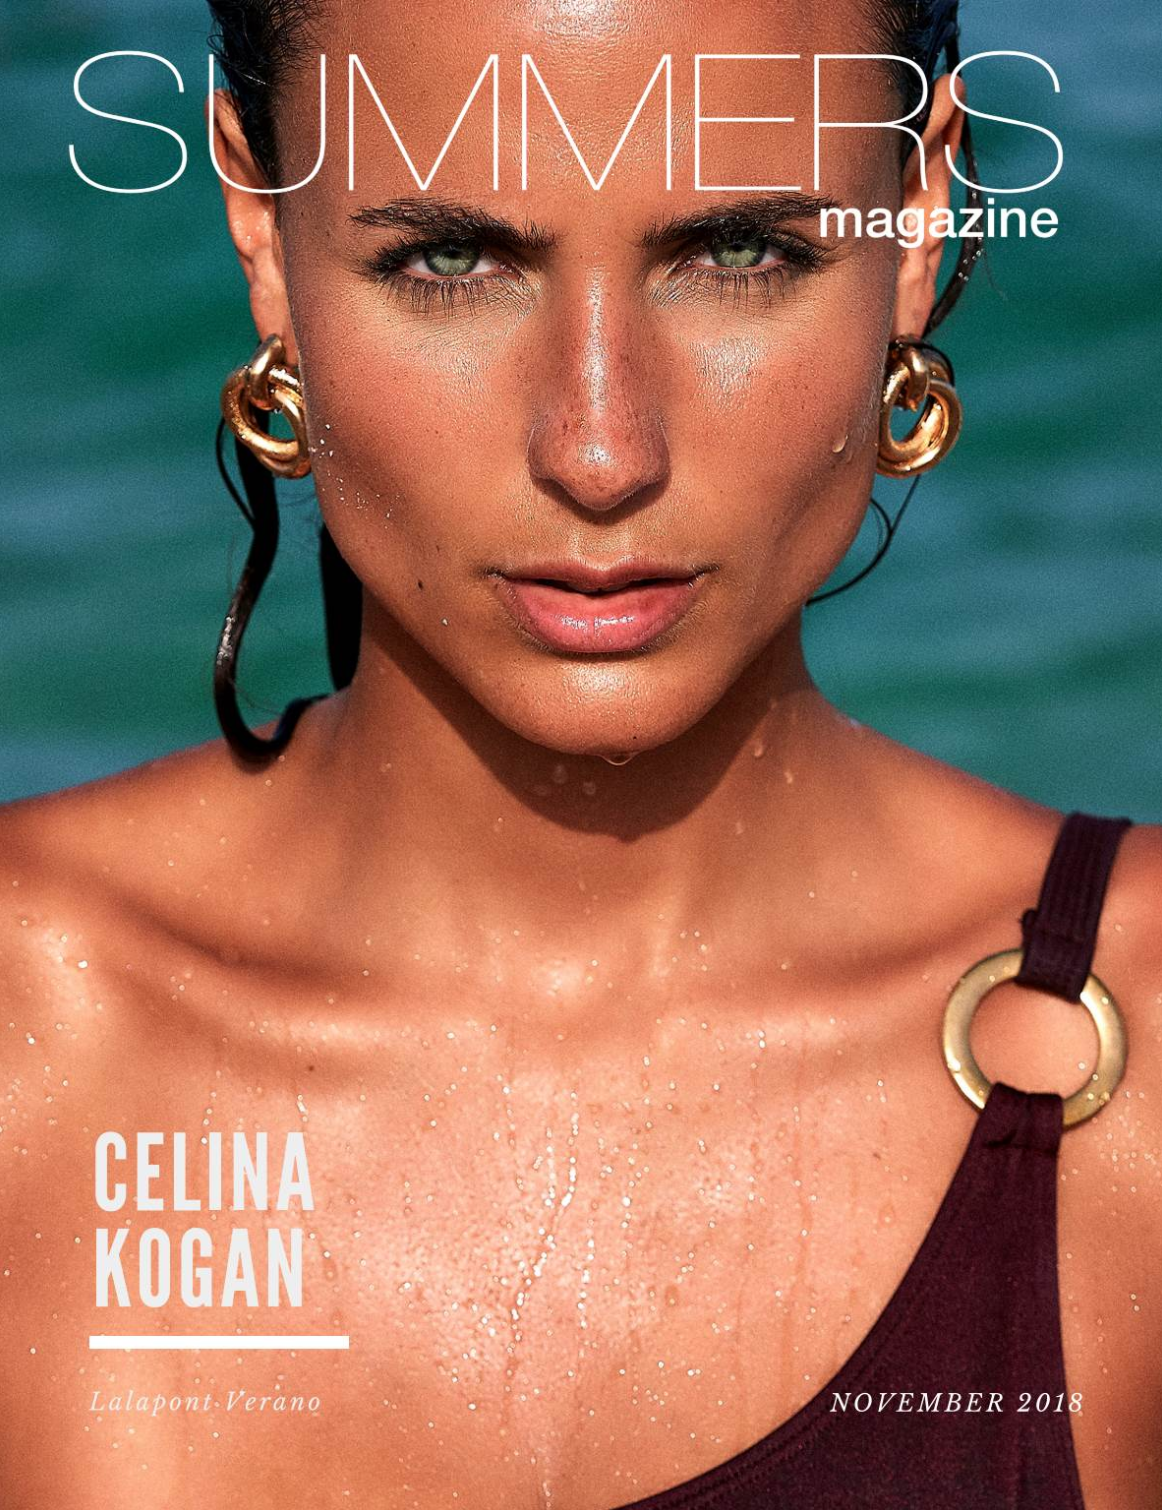 Summers Magazine November 2018 ft. Celina Kogan